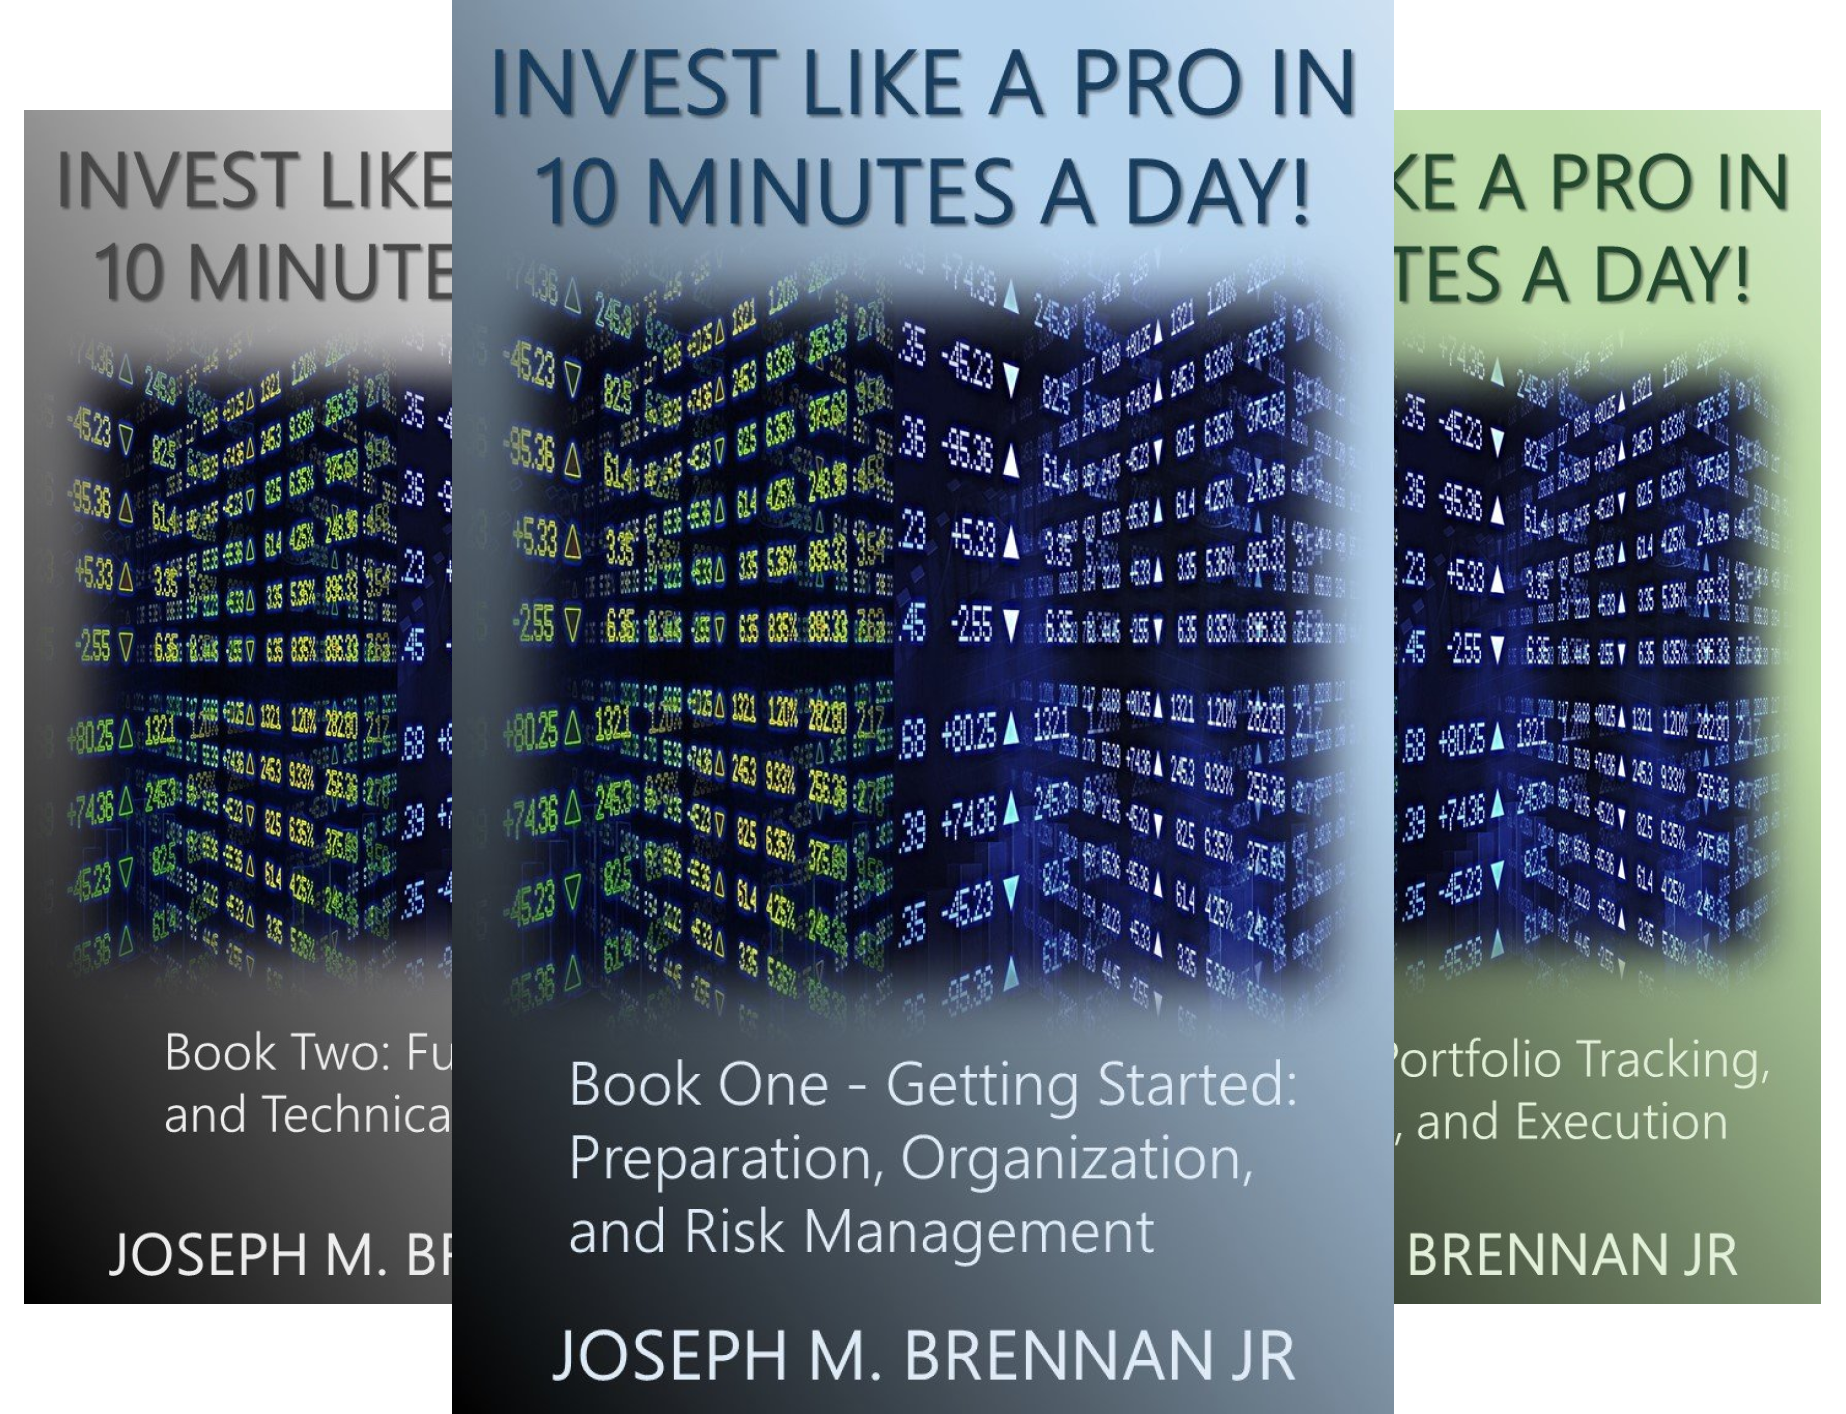 INVEST LIKE A PRO IN 10 MINUTES A DAY! (4 Book Series)